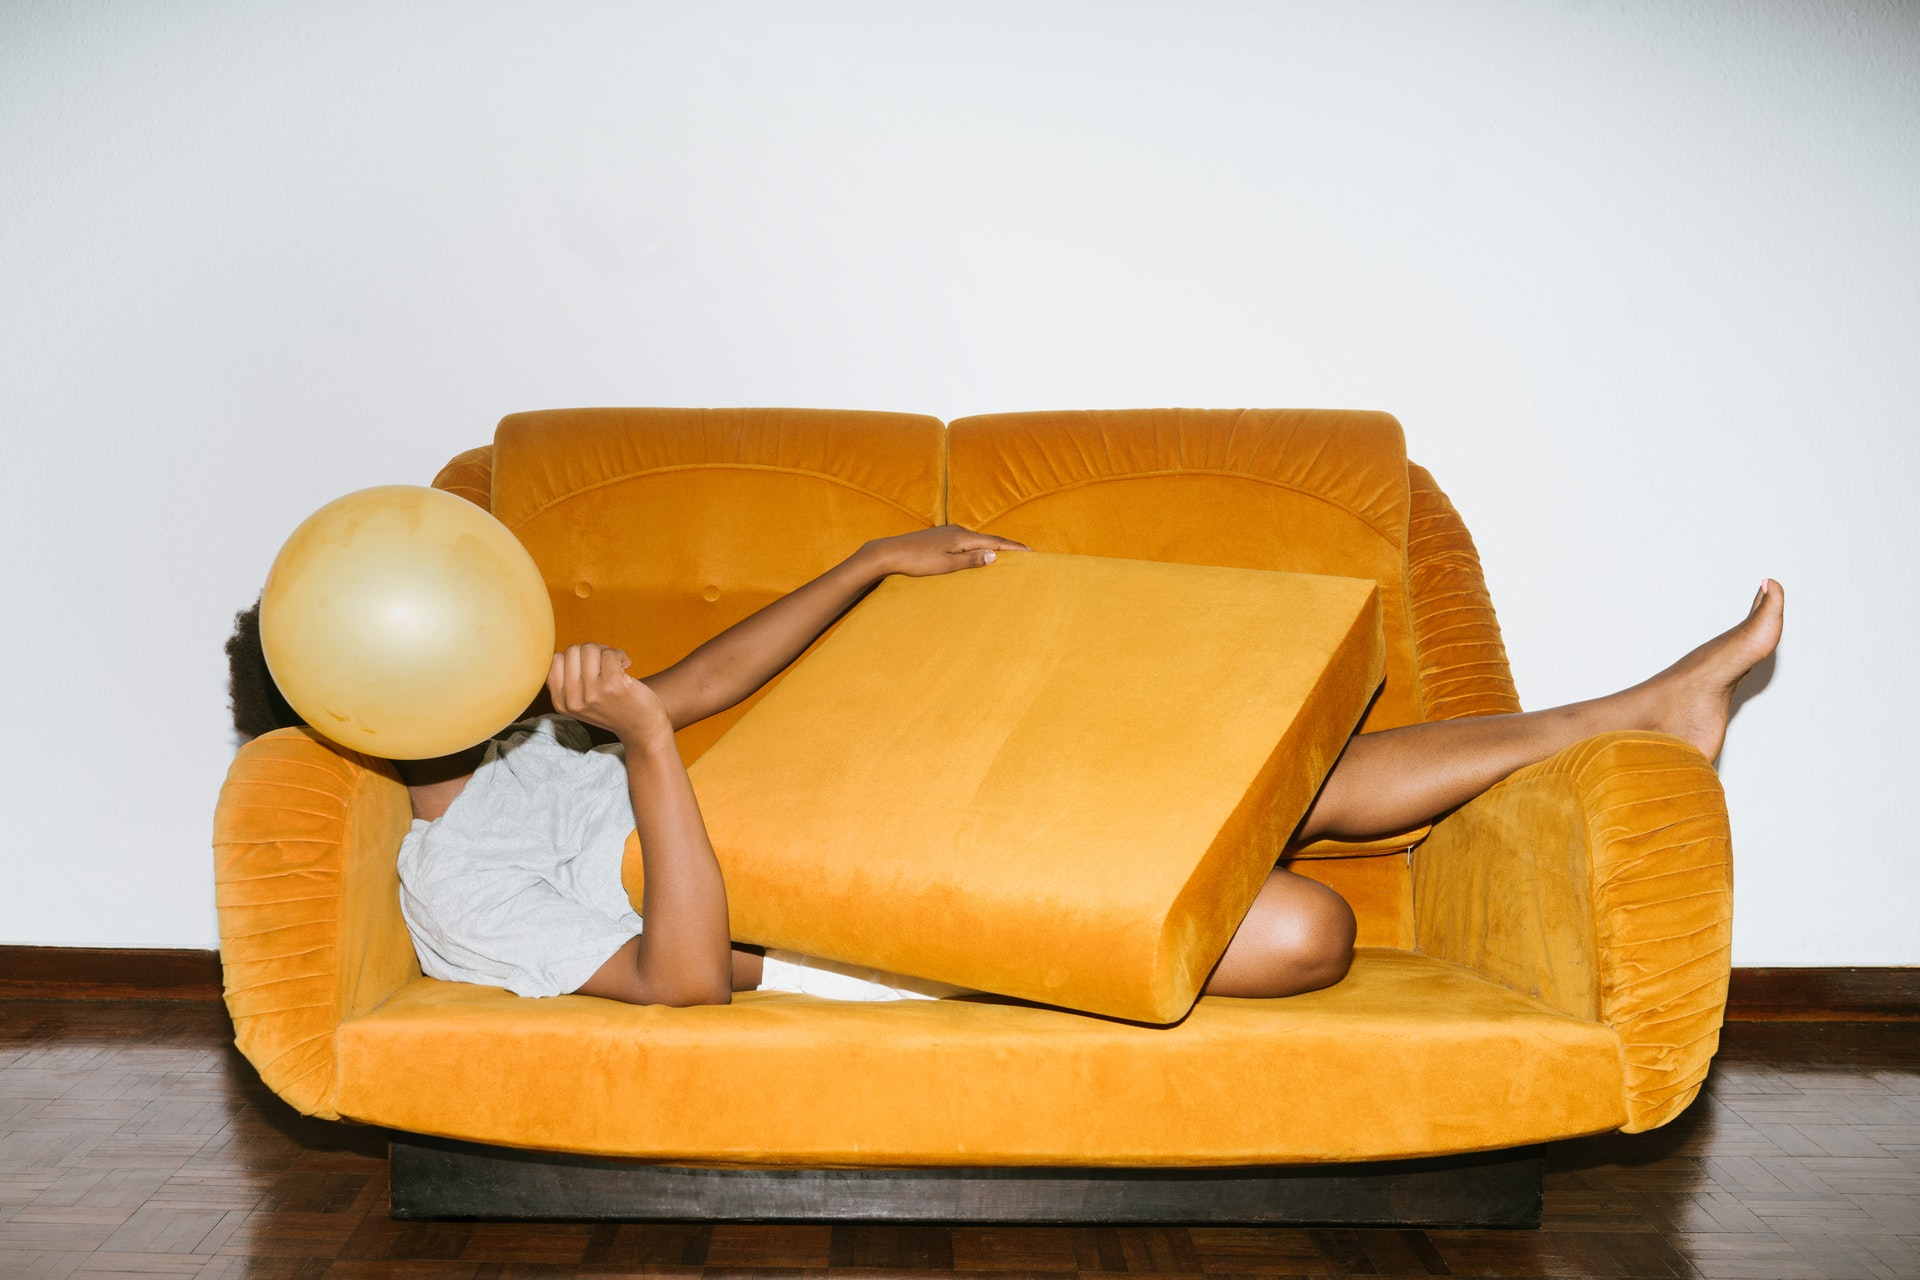 person-lying-on-orange-sofa-3621210.jpg